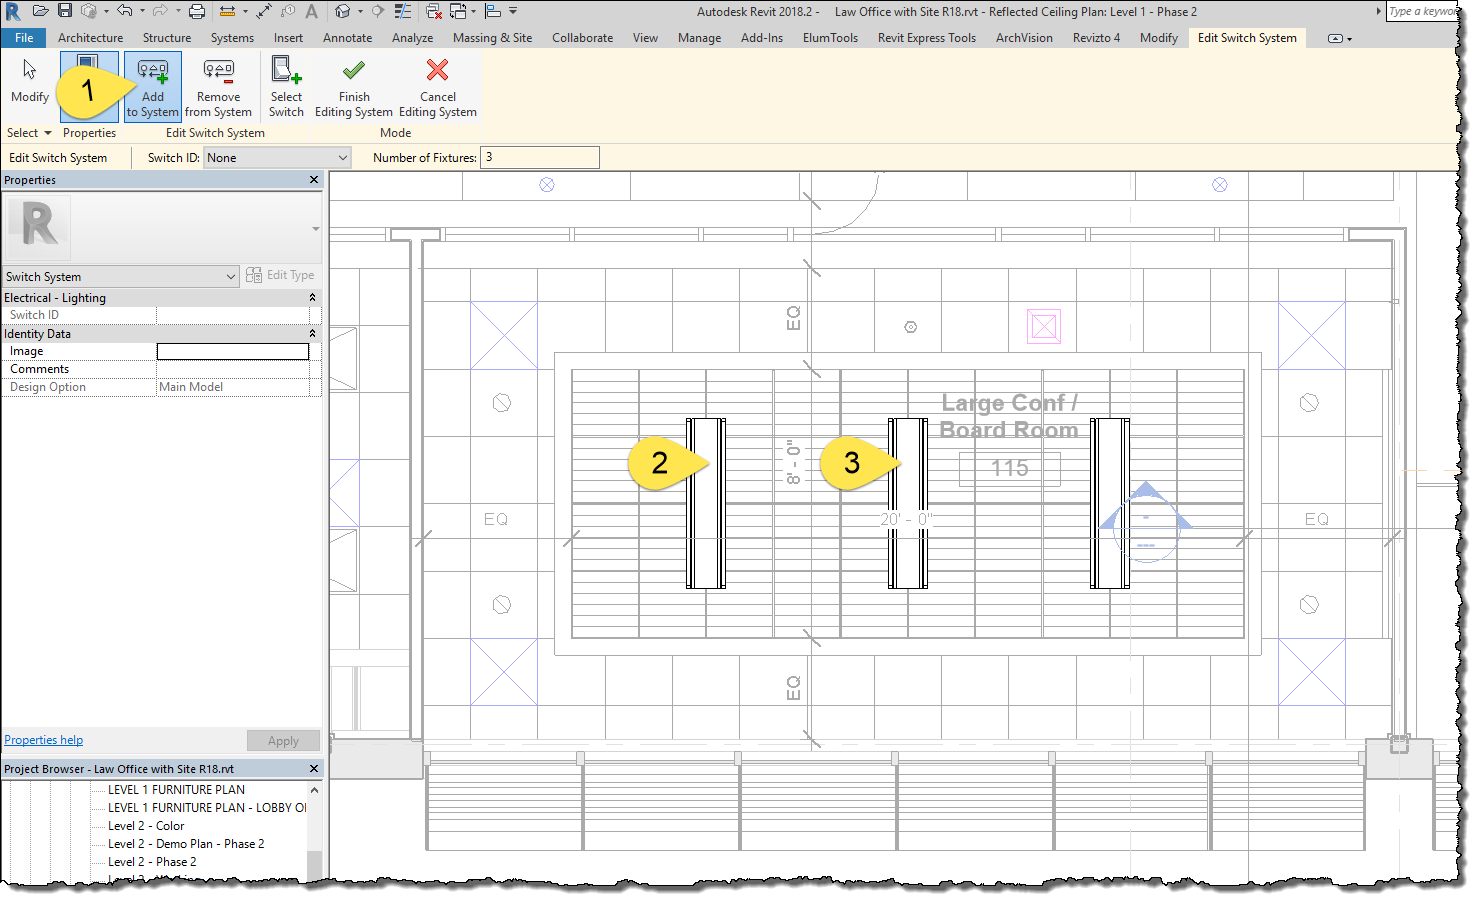 bim chapters revit lighting fixtures; switchingclicking edit switch system enters an edit mode where you can select all the lights controlled by a single switch you can also remove lights